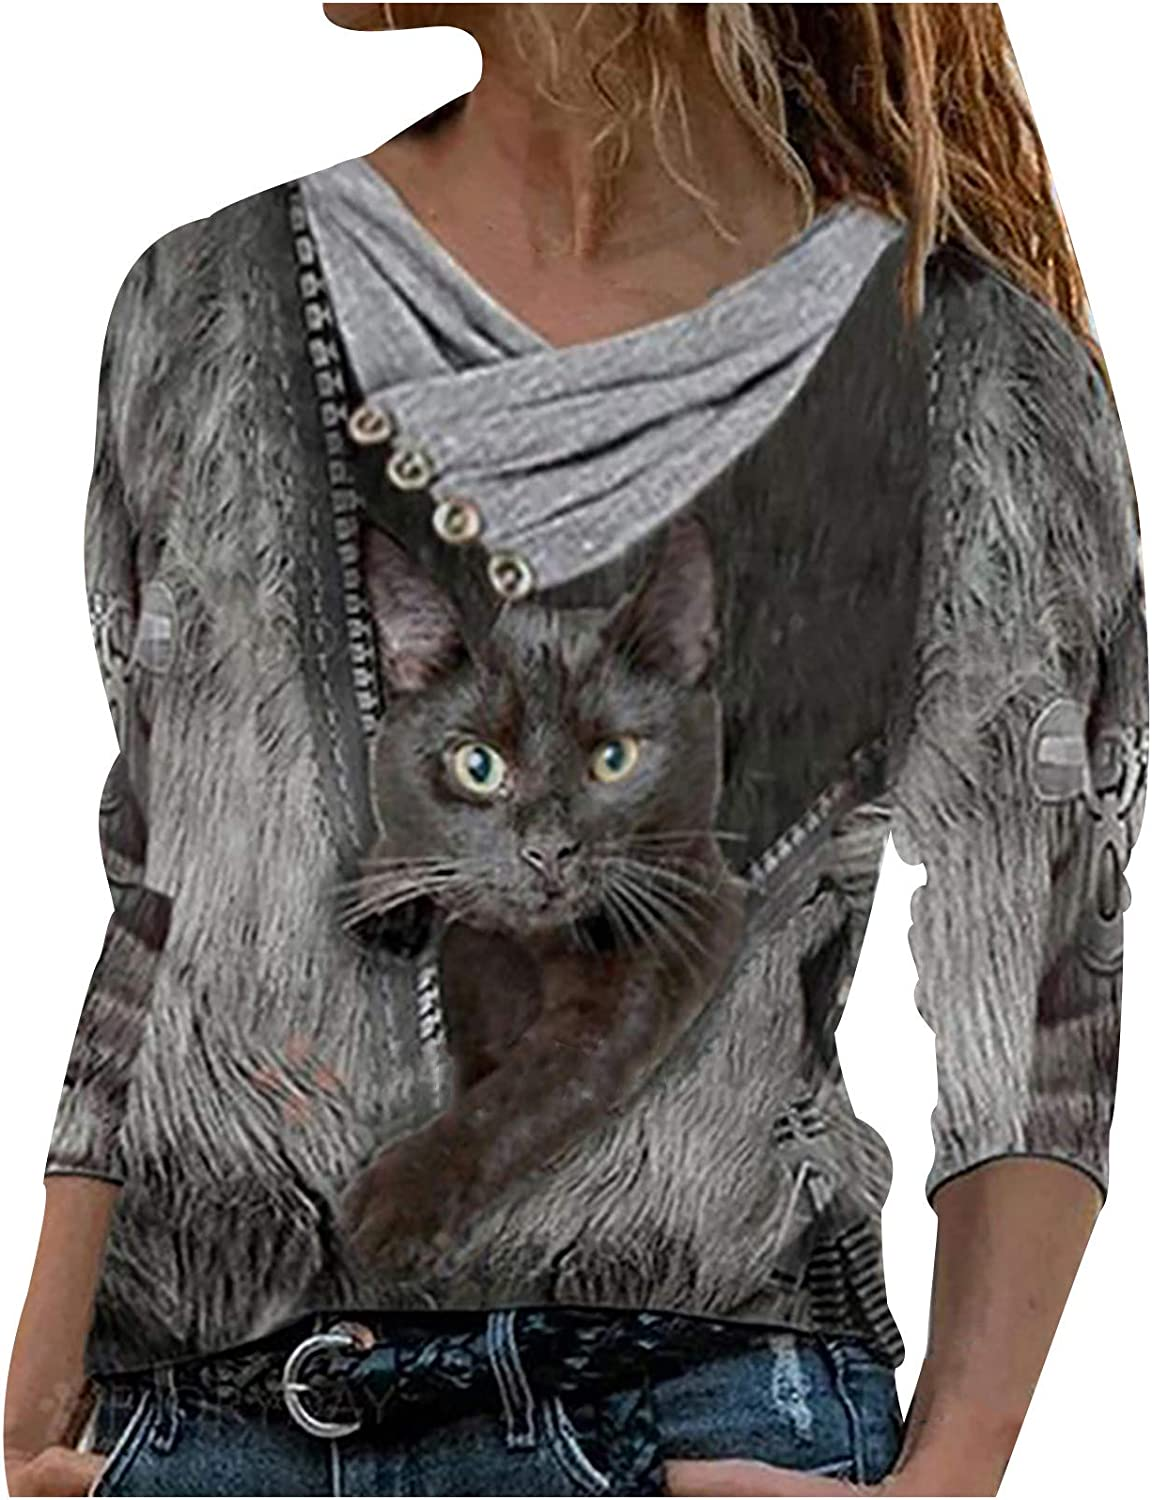 Forwelly Long Sleeve T Shirt for Women Novelty Cat Print Plus Size Tee Shirt V Neck Tunic Top Blouse